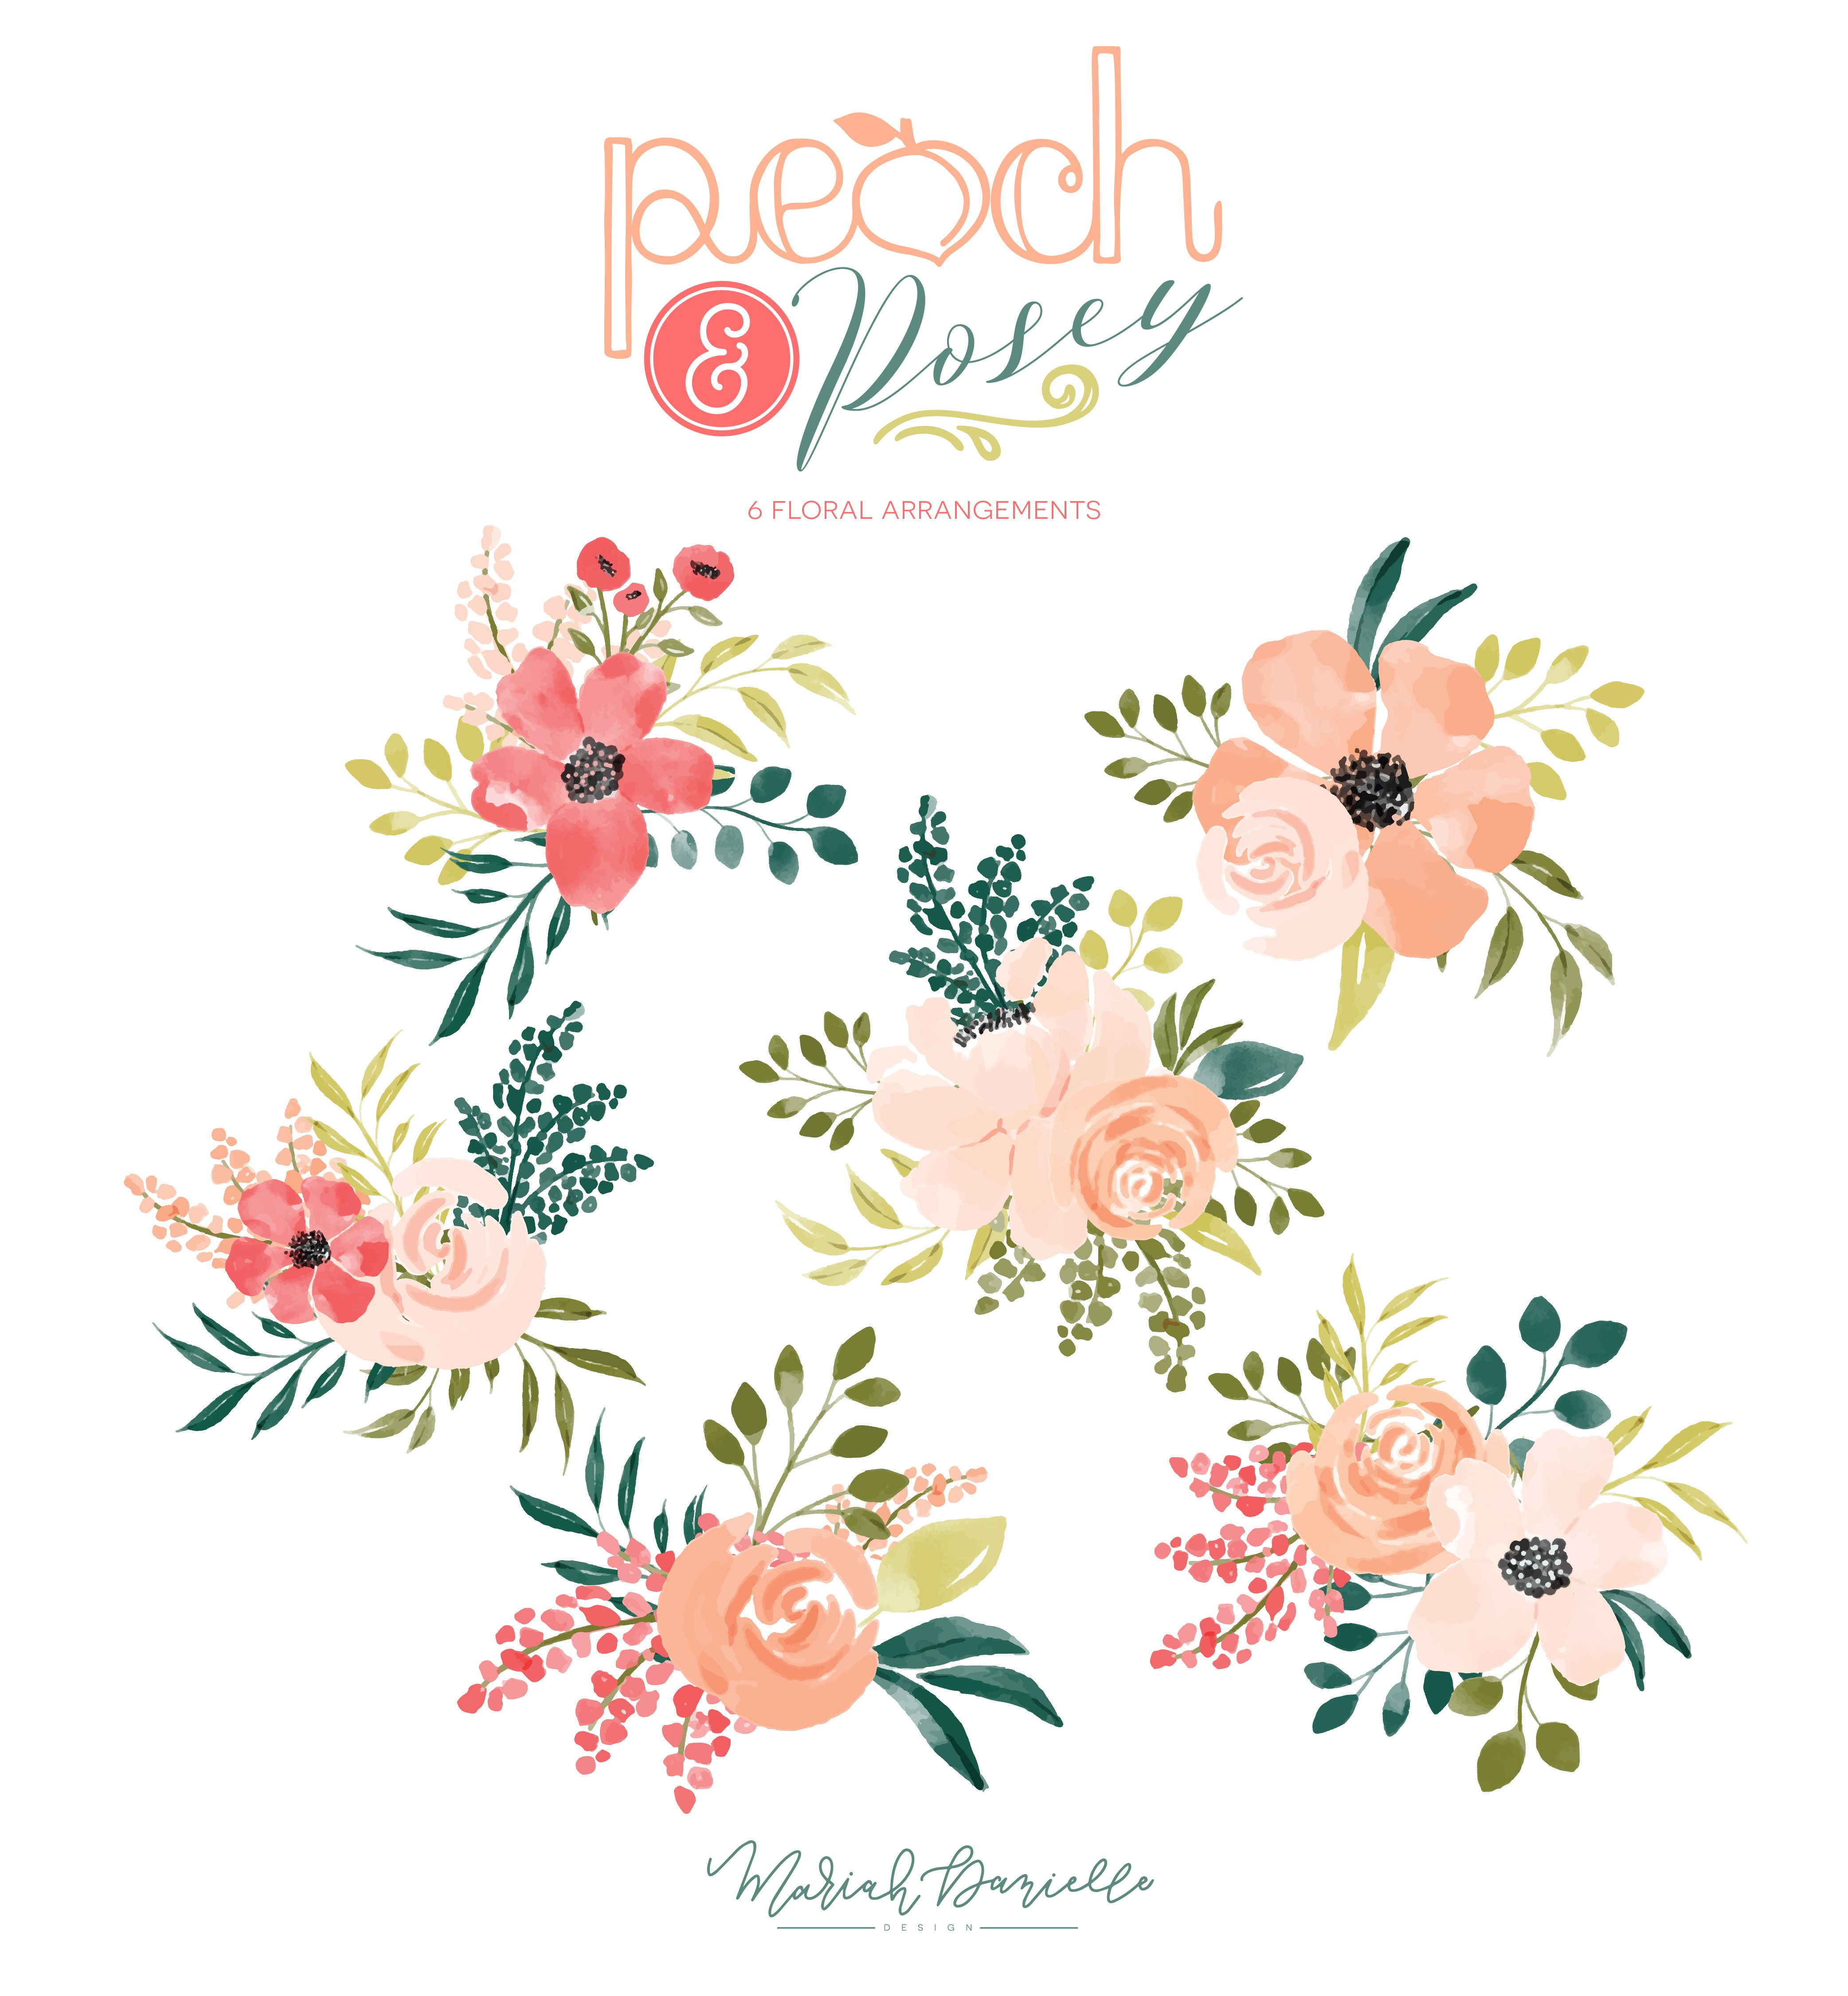 Peach Posey Floral Bouquet Set Illustrations Hand Drawn